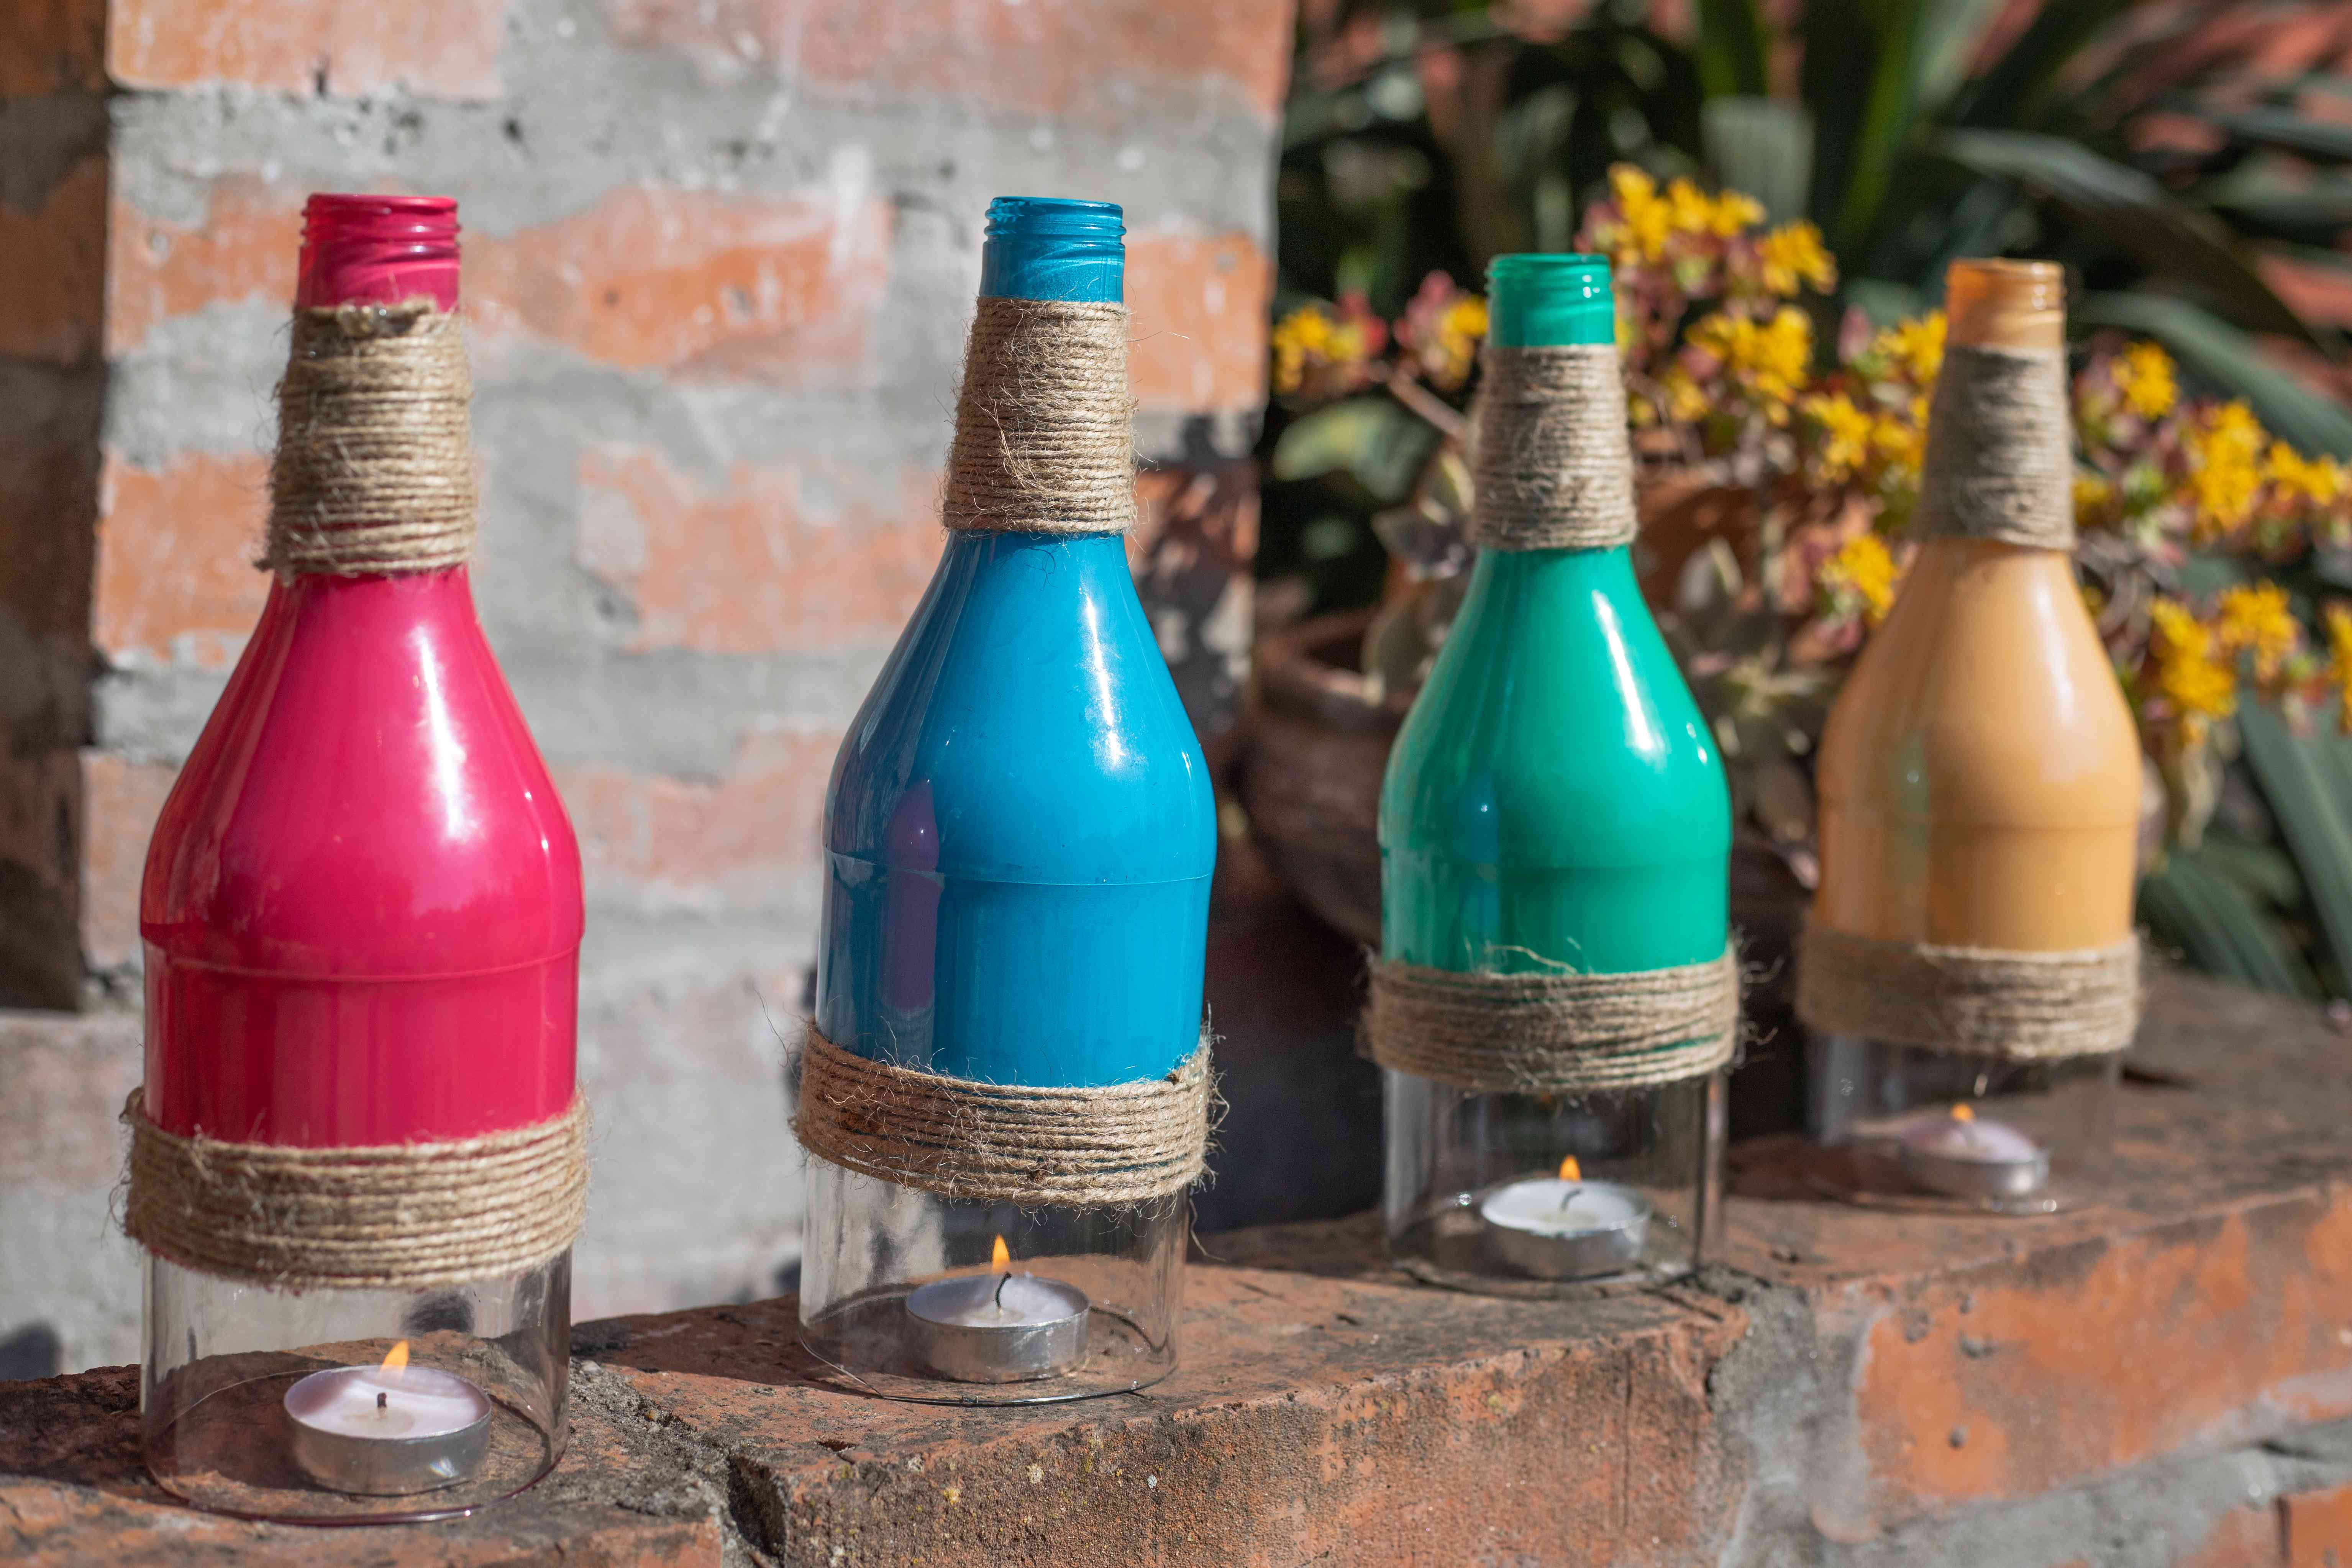 wine bottles painted and upcycled with twine placed over tea lights as outdoor lanterns